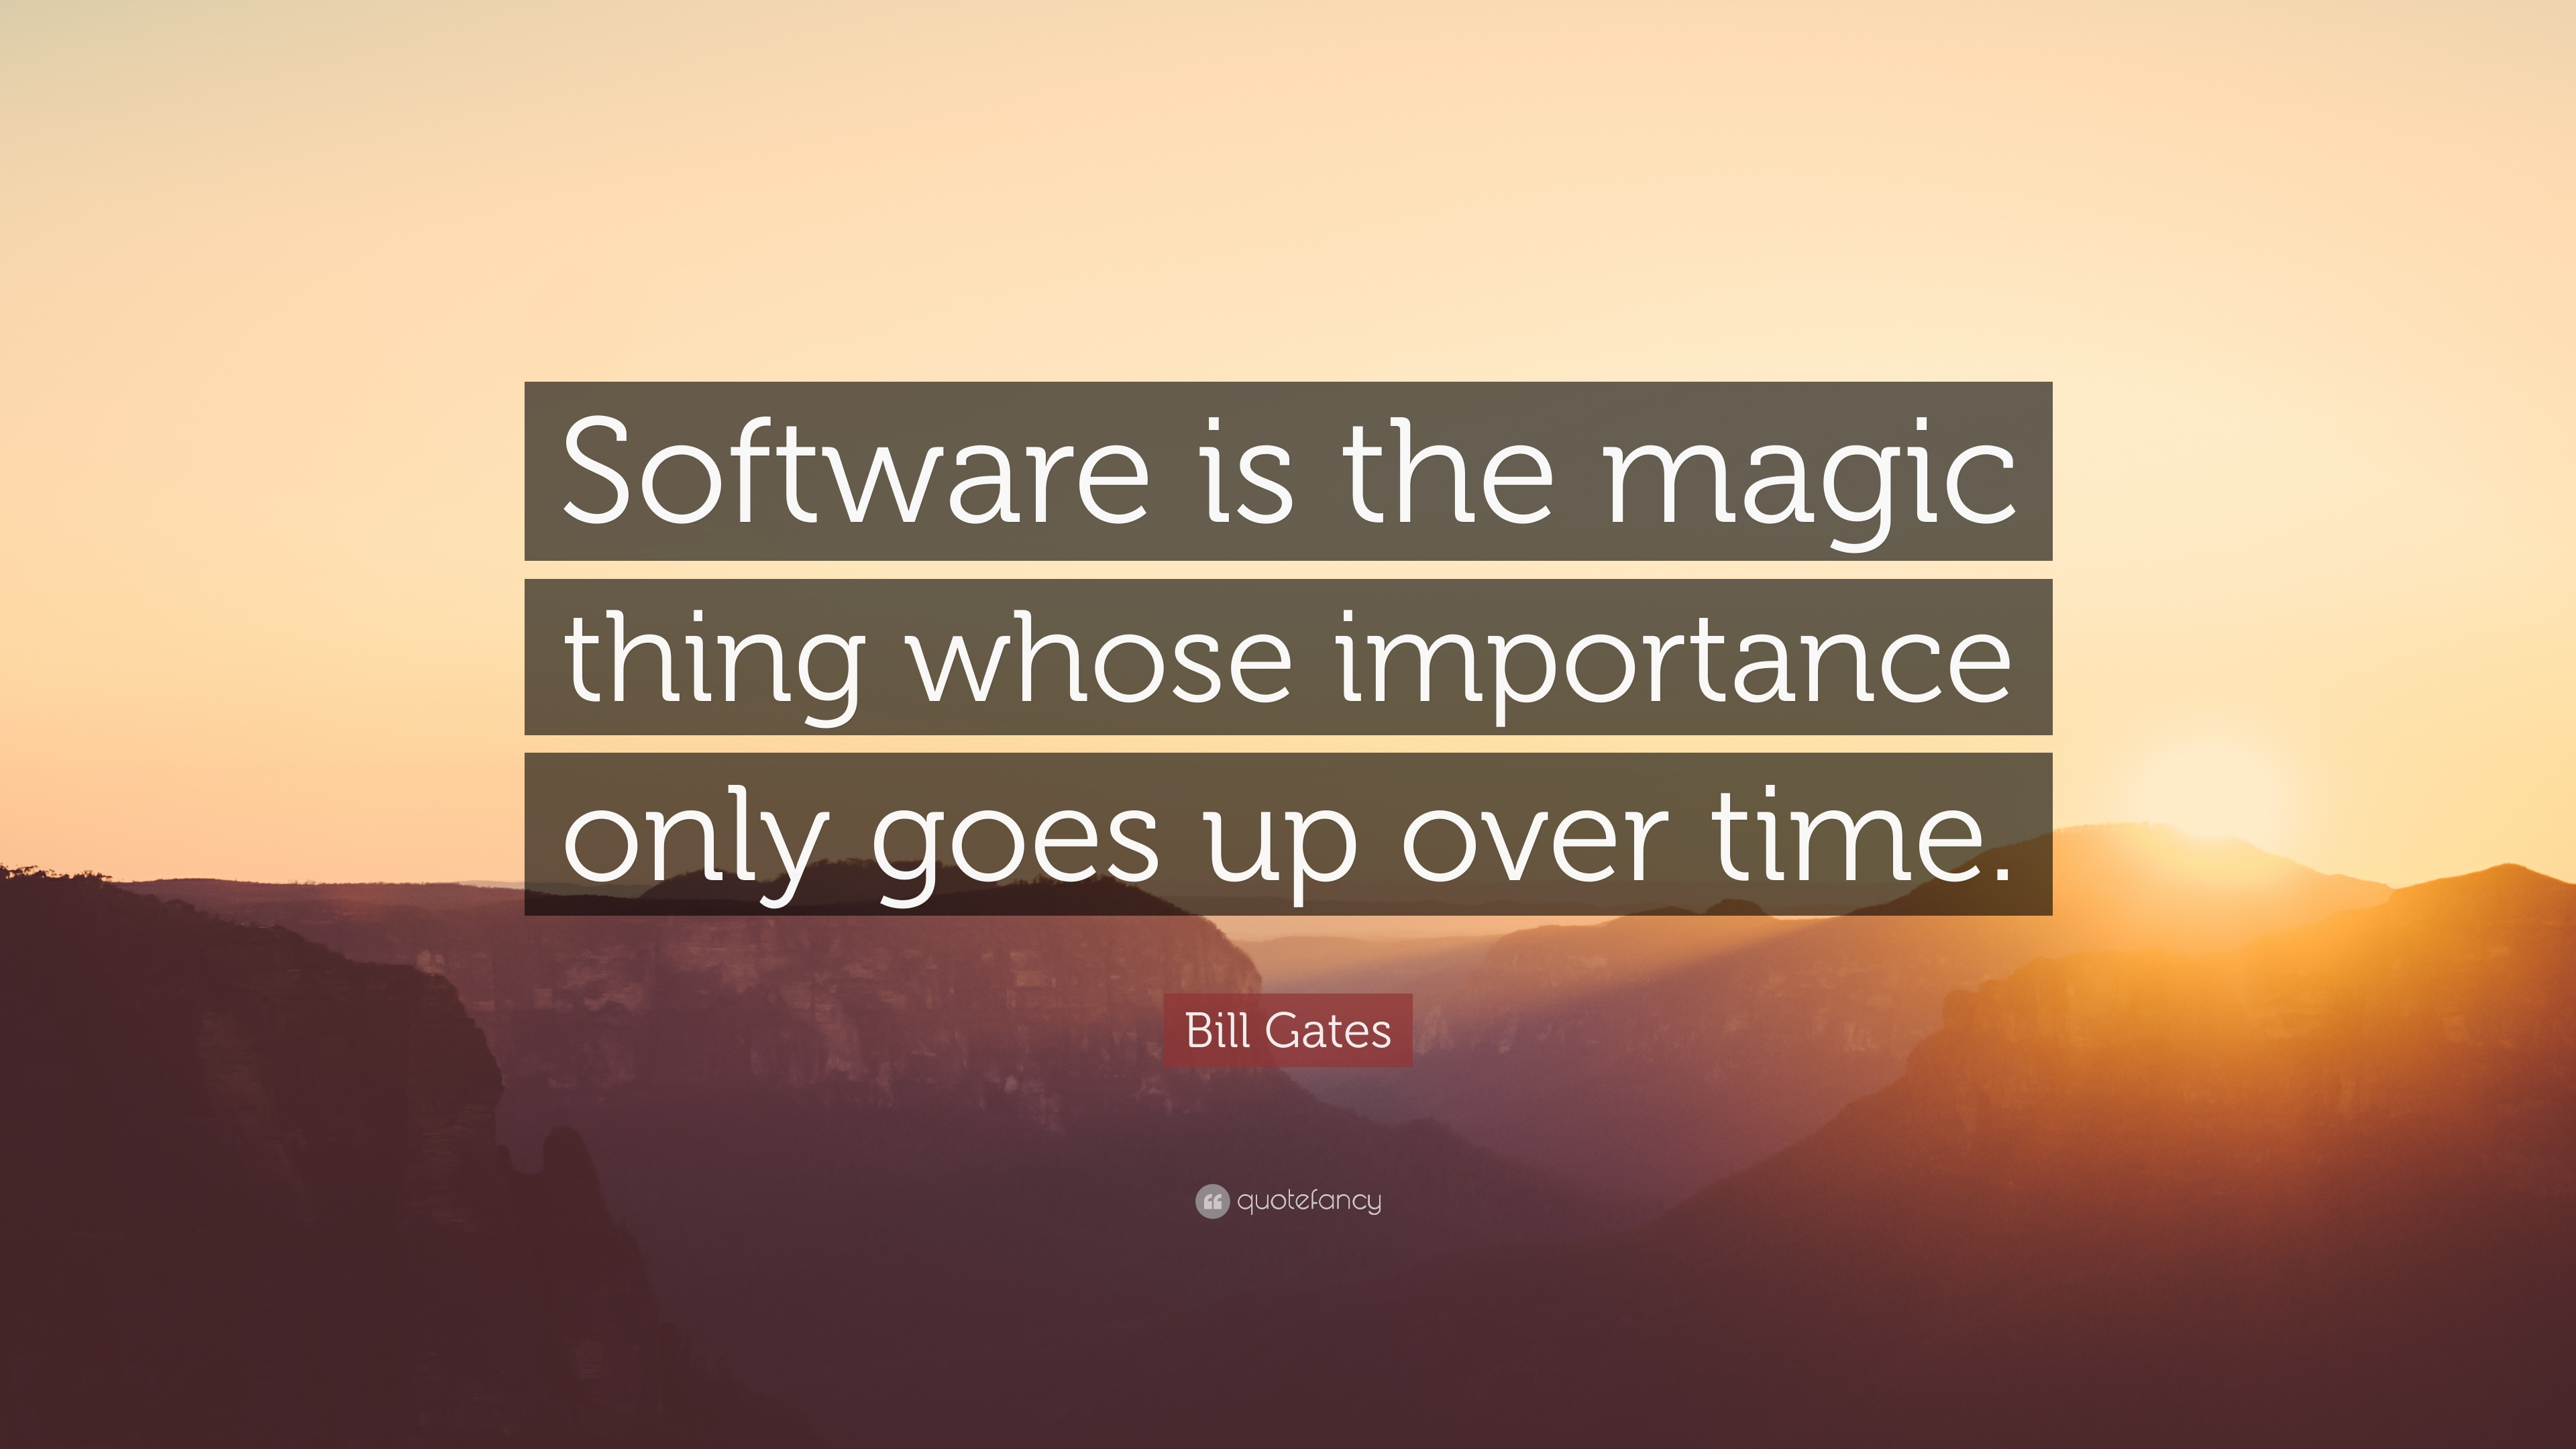 Bill Gates Quote Software Is The Magic Thing Whose Importance Only Goes Up Over